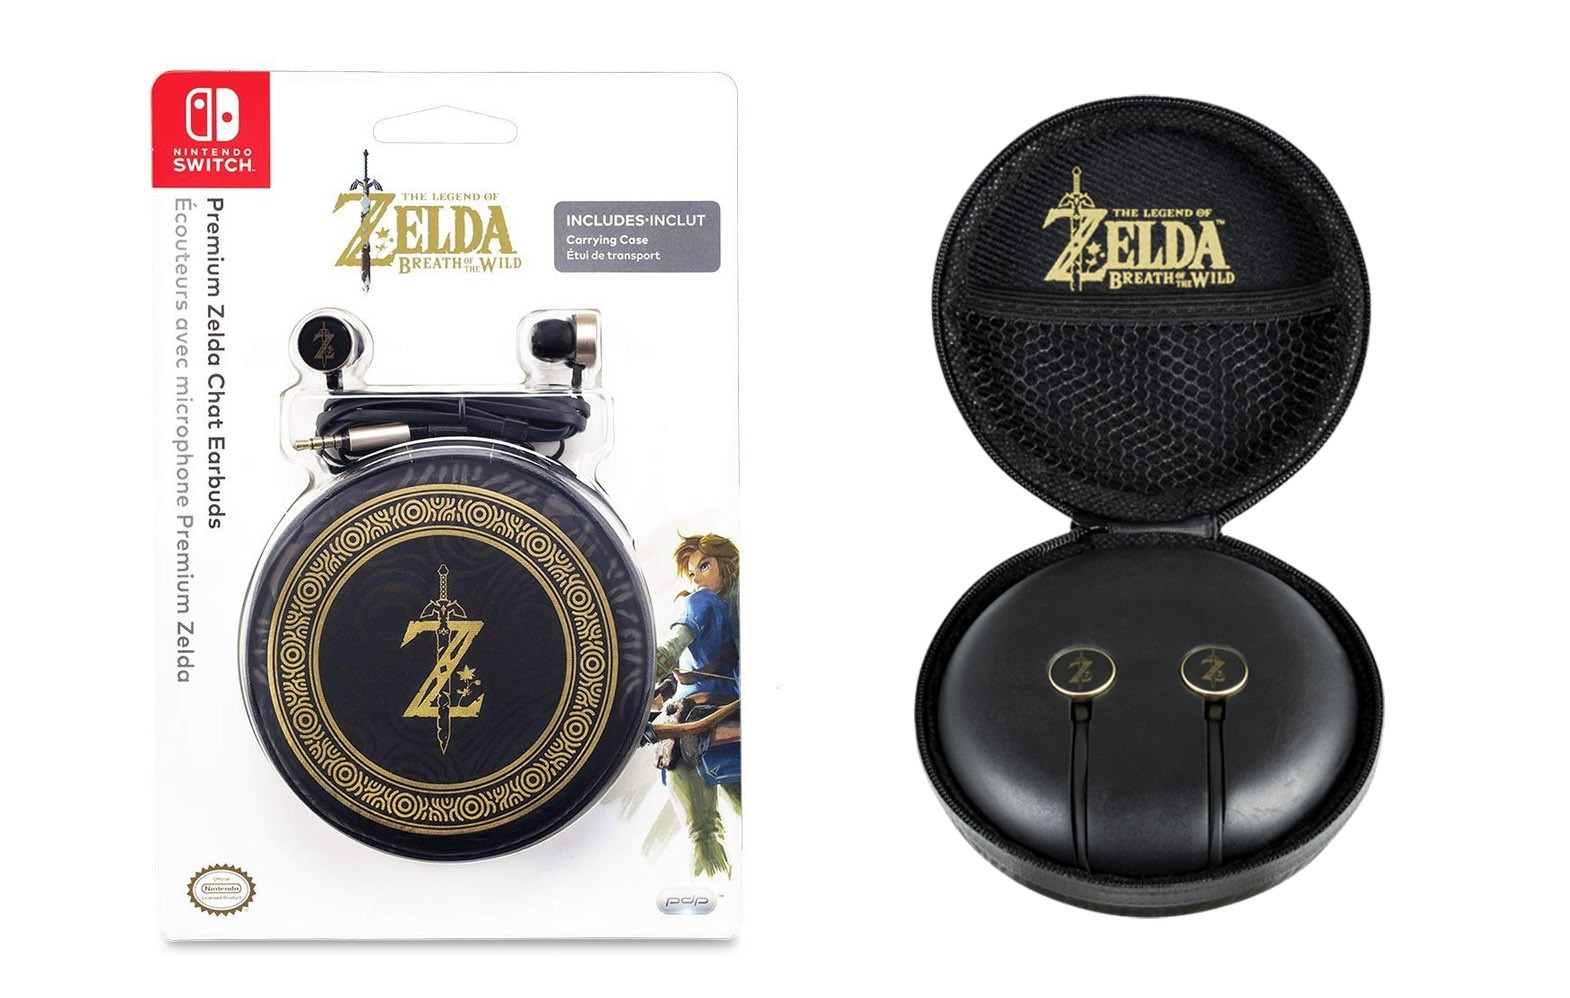 PDP Premium Zelda Chat Earbuds For Nintendo Switch